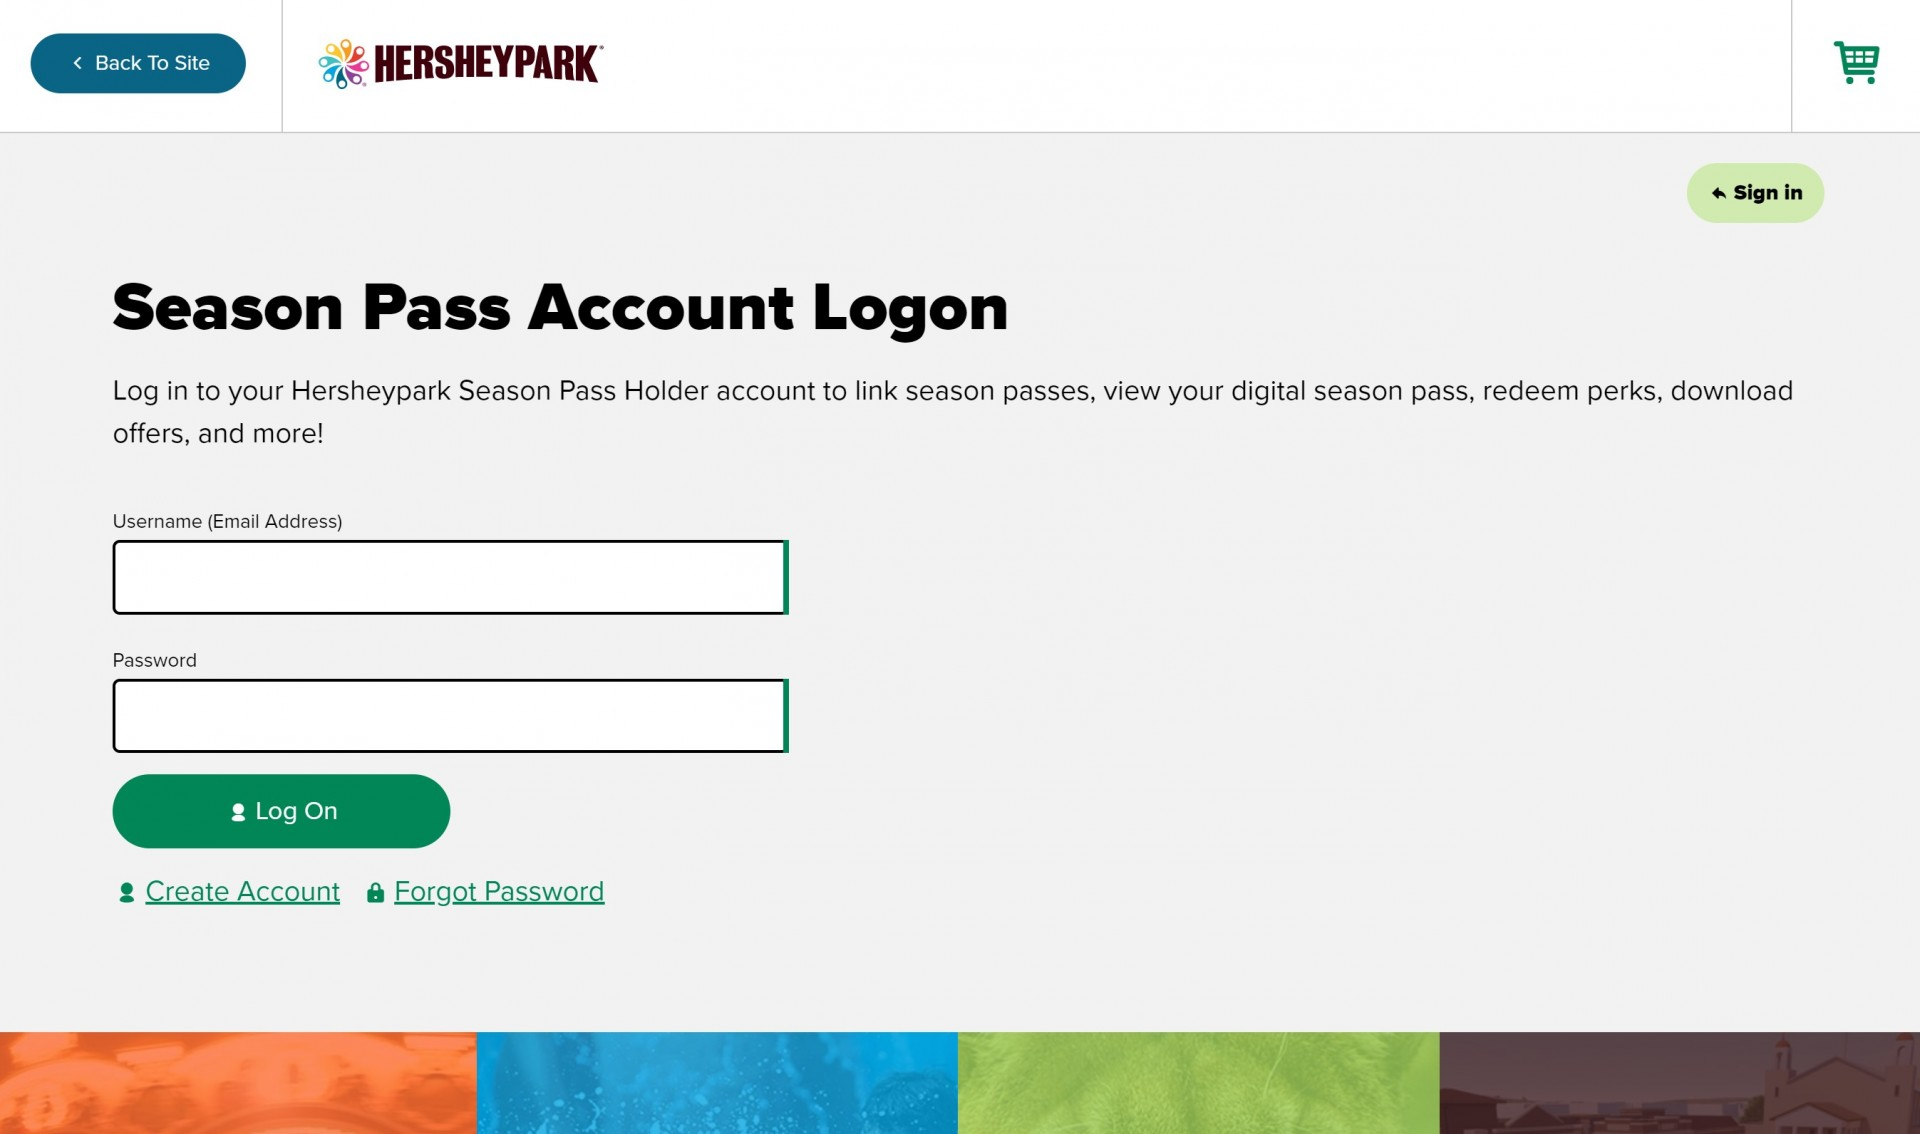 Season Pass Account Logon Screenshot